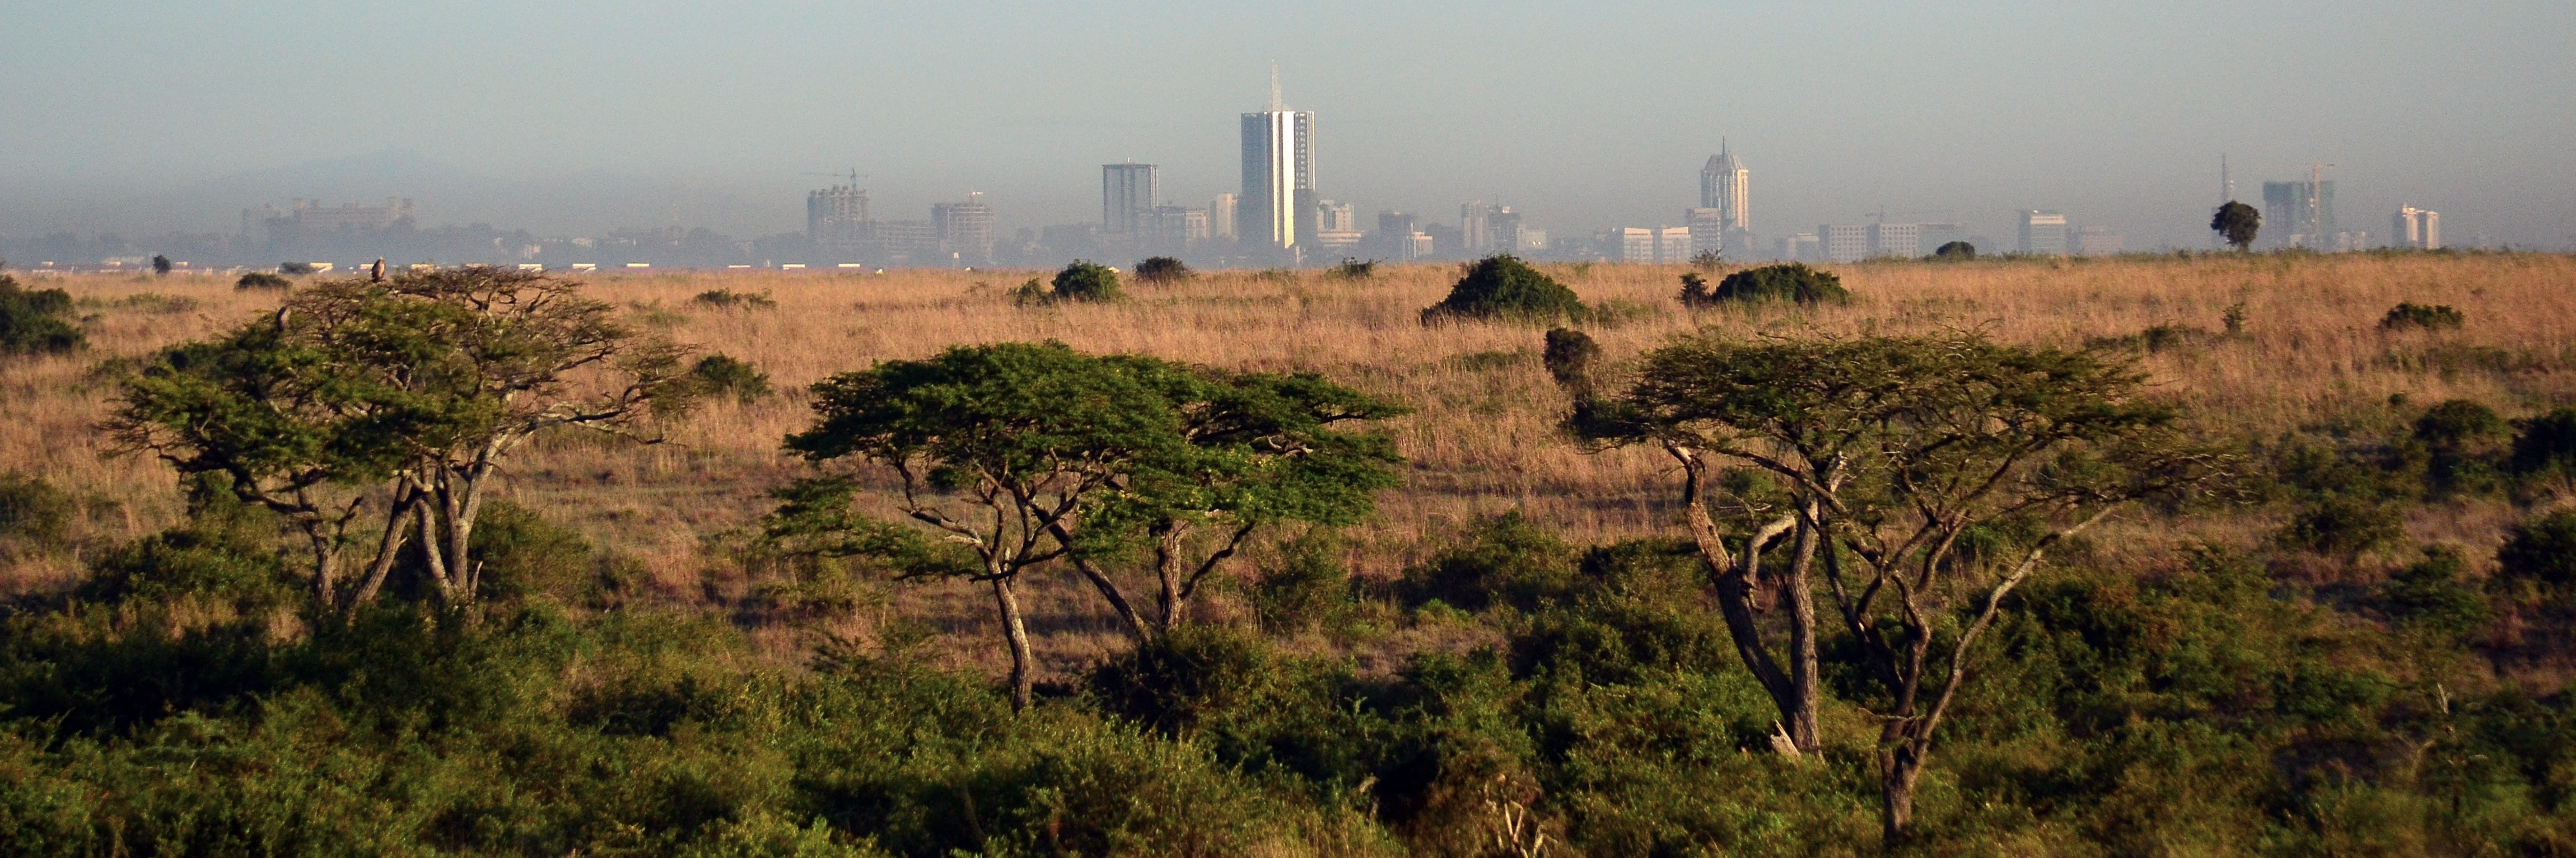 Africa, trees and cityscape